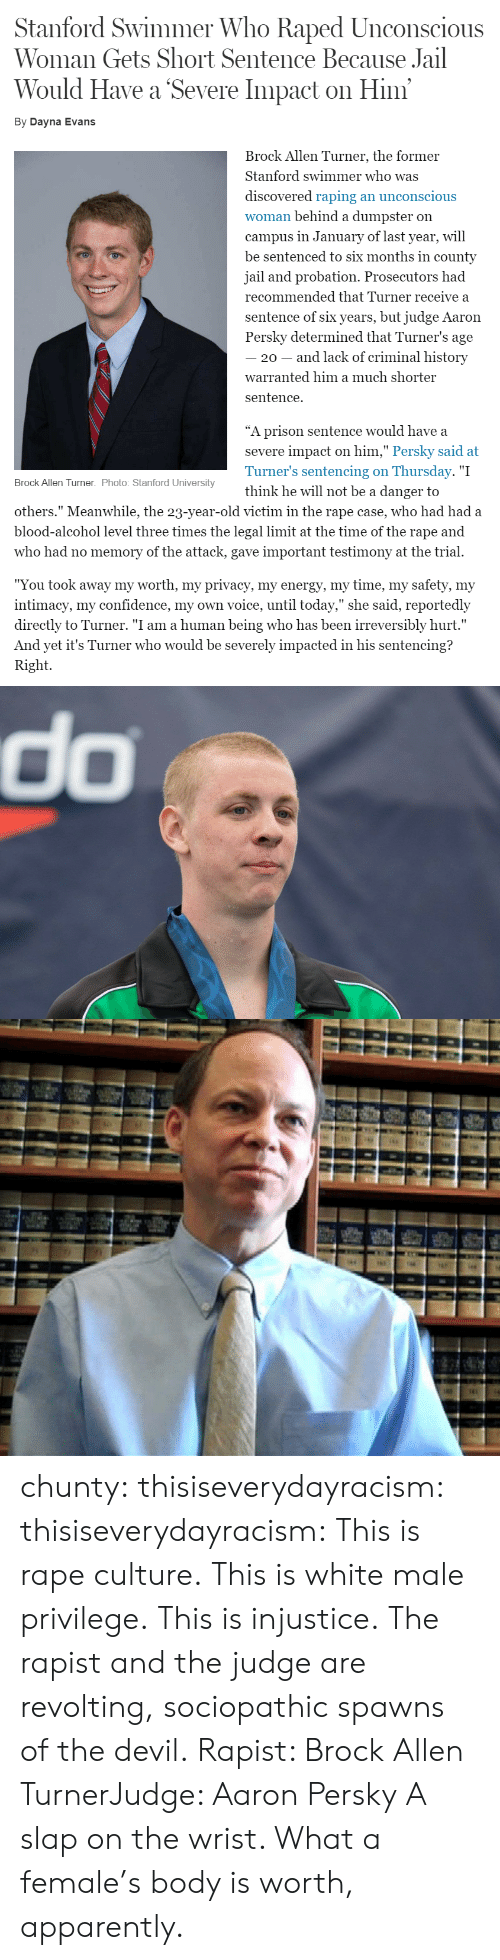 "Apparently, Confidence, and Jail: Stanford Swimmer Who Raped Unconscious  Woman Gets Short Sentence Because Jail  Would Have a Severe Impact on Him  By Dayna Evans  Brock Allen Turner, the former  Stanford swimmer who was  discovered raping an unconscious  woman behind a dumpster on  campus in January of last year, will  be sentenced to six months in county  jail and probation. Prosecutors had  recommended that Turner receive a  sentence of six years, but judge Aaron  Persky determined that Turner's age  20 - and lack of criminal history  warranted him a much shorter  sentence.  ""A prison sentence would have a  severe impact on him,"" Persky said at  Turner's sentencing on Thursday. ""I  think he will not be a danger to  Brock Allen Turner. Photo: Stanford University  others."" Meanwhile, the 23-year-old victim in the rape case, who had had a  blood-alcohol level three times the legal limit at the time of the rape and  who had no memory of the attack, gave important testimony at the trial.  ""You took away my worth, my privacv, my energv, my time, my safetv, my  intimacy, my confidence, my own voice, until today,"" she said, reportedly  directly to Turner. ""I am a human being who has been irreversibly hurt.""  And yet it's Turner who would be severely impacted in his sentencing?  Right.   do chunty:  thisiseverydayracism:  thisiseverydayracism:  This is rape culture.  This is white male privilege.  This is injustice.  The rapist and the judge are revolting, sociopathic spawns of the devil.  Rapist: Brock Allen TurnerJudge: Aaron Persky  A slap on the wrist. What a female's body is worth, apparently."